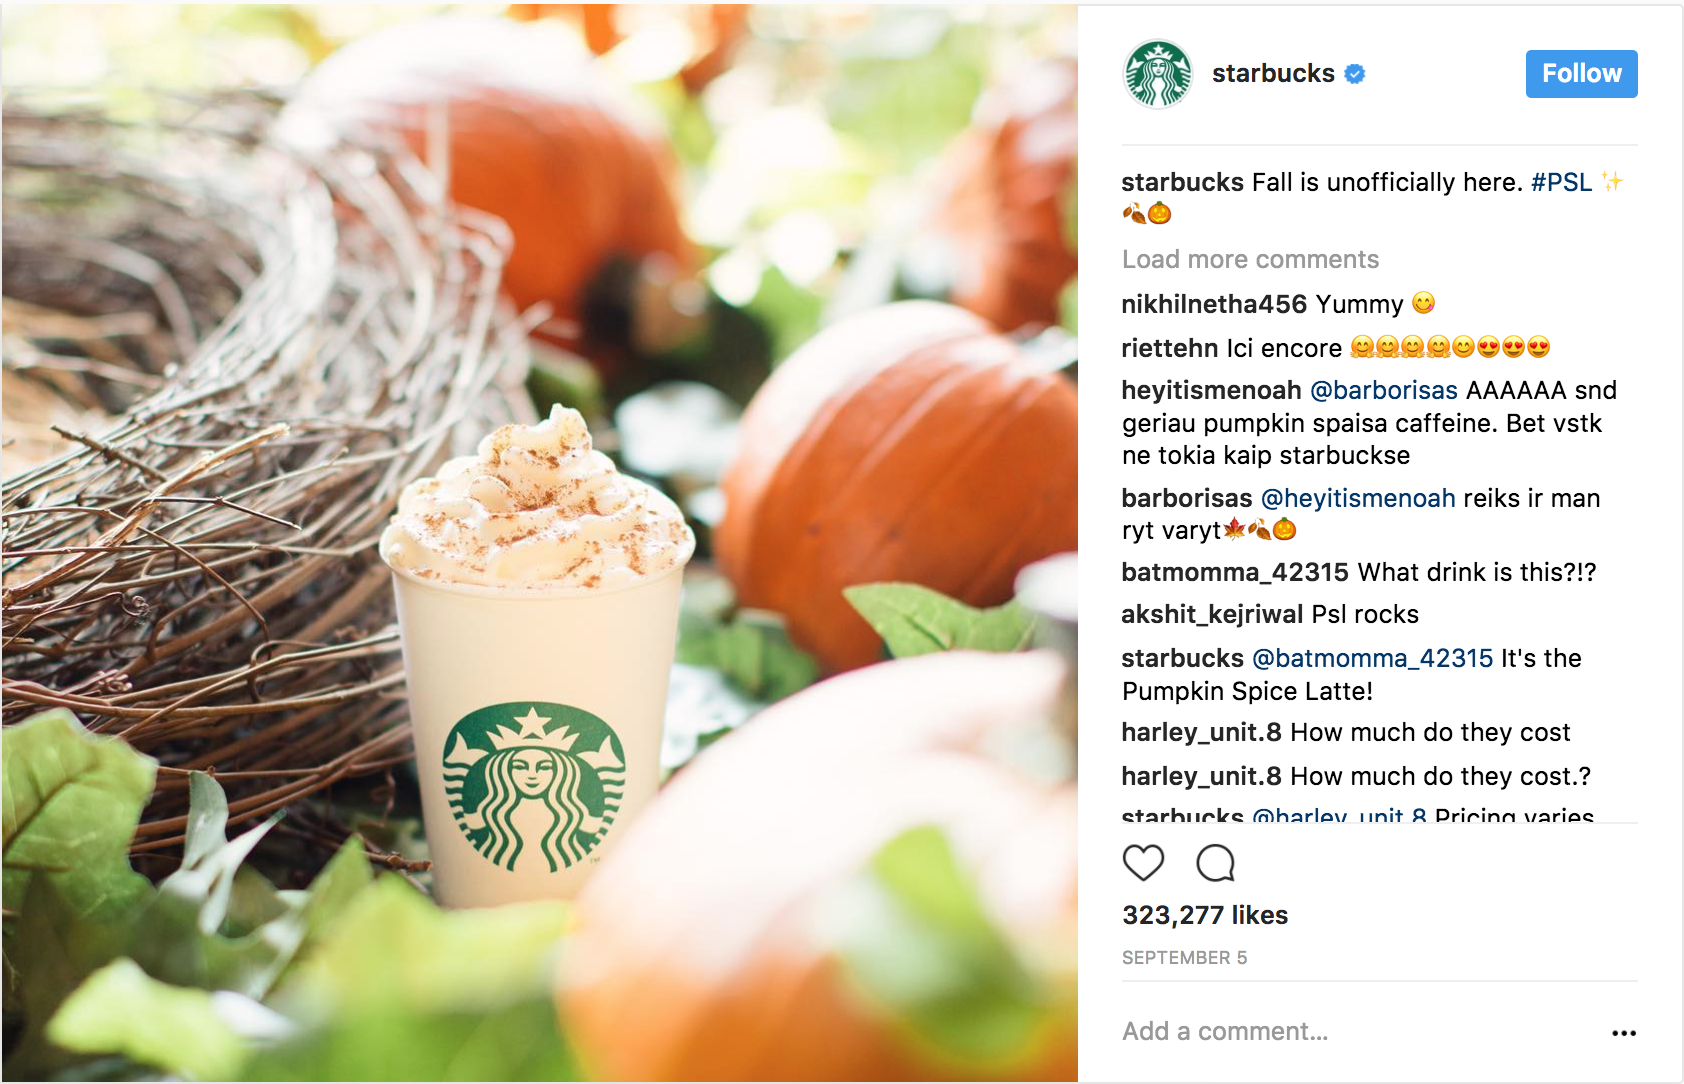 Starbucks TheRealPSL Instagram account